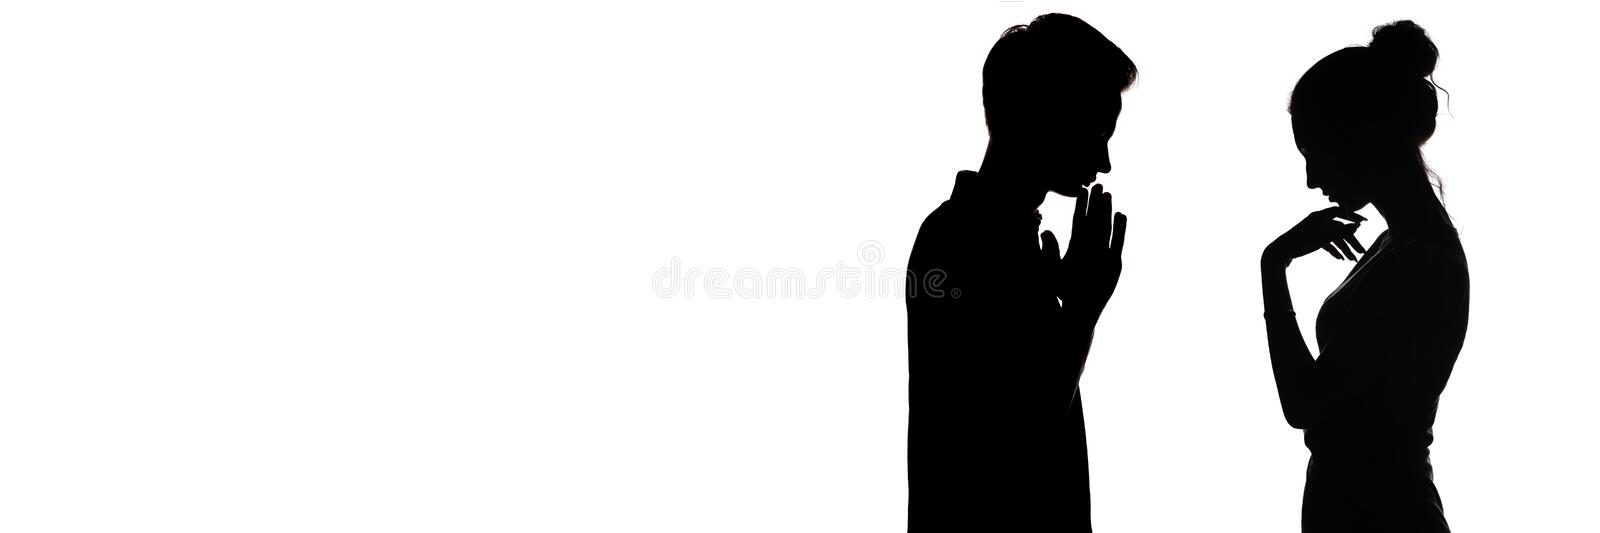 Silhouette profile of pensive young man and woman opposite each other, upset boy and a girl , concept of love and relationships on vector illustration